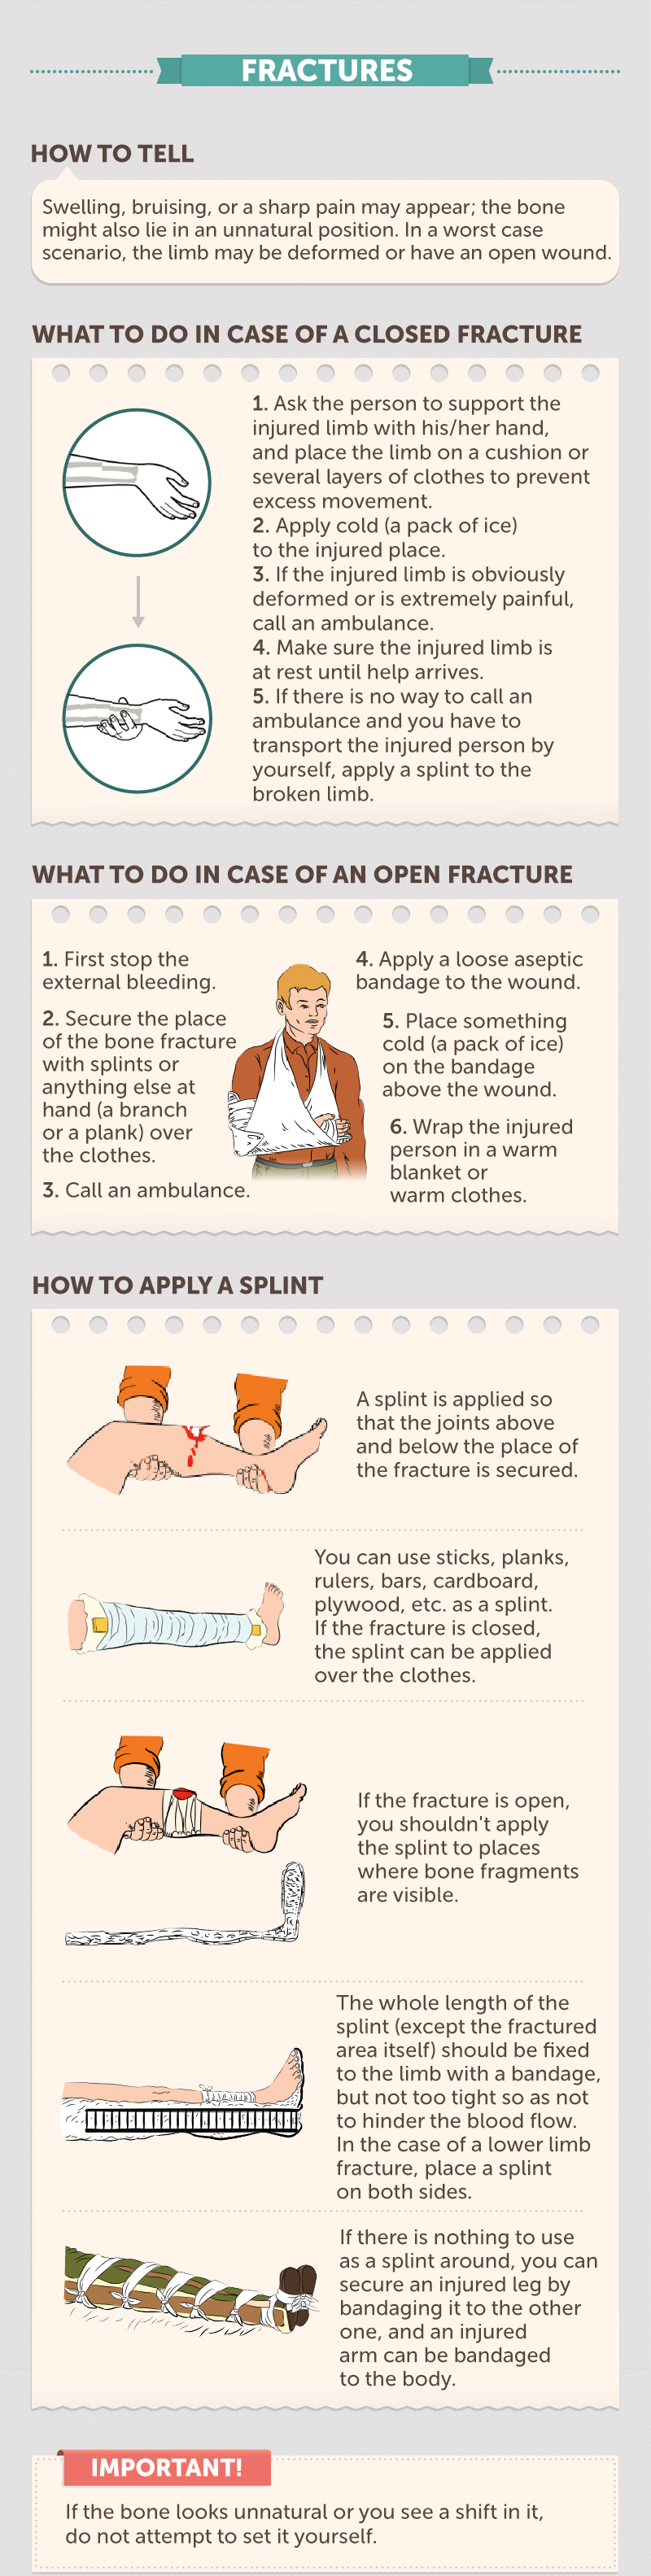 First Aid Basics for Fractures